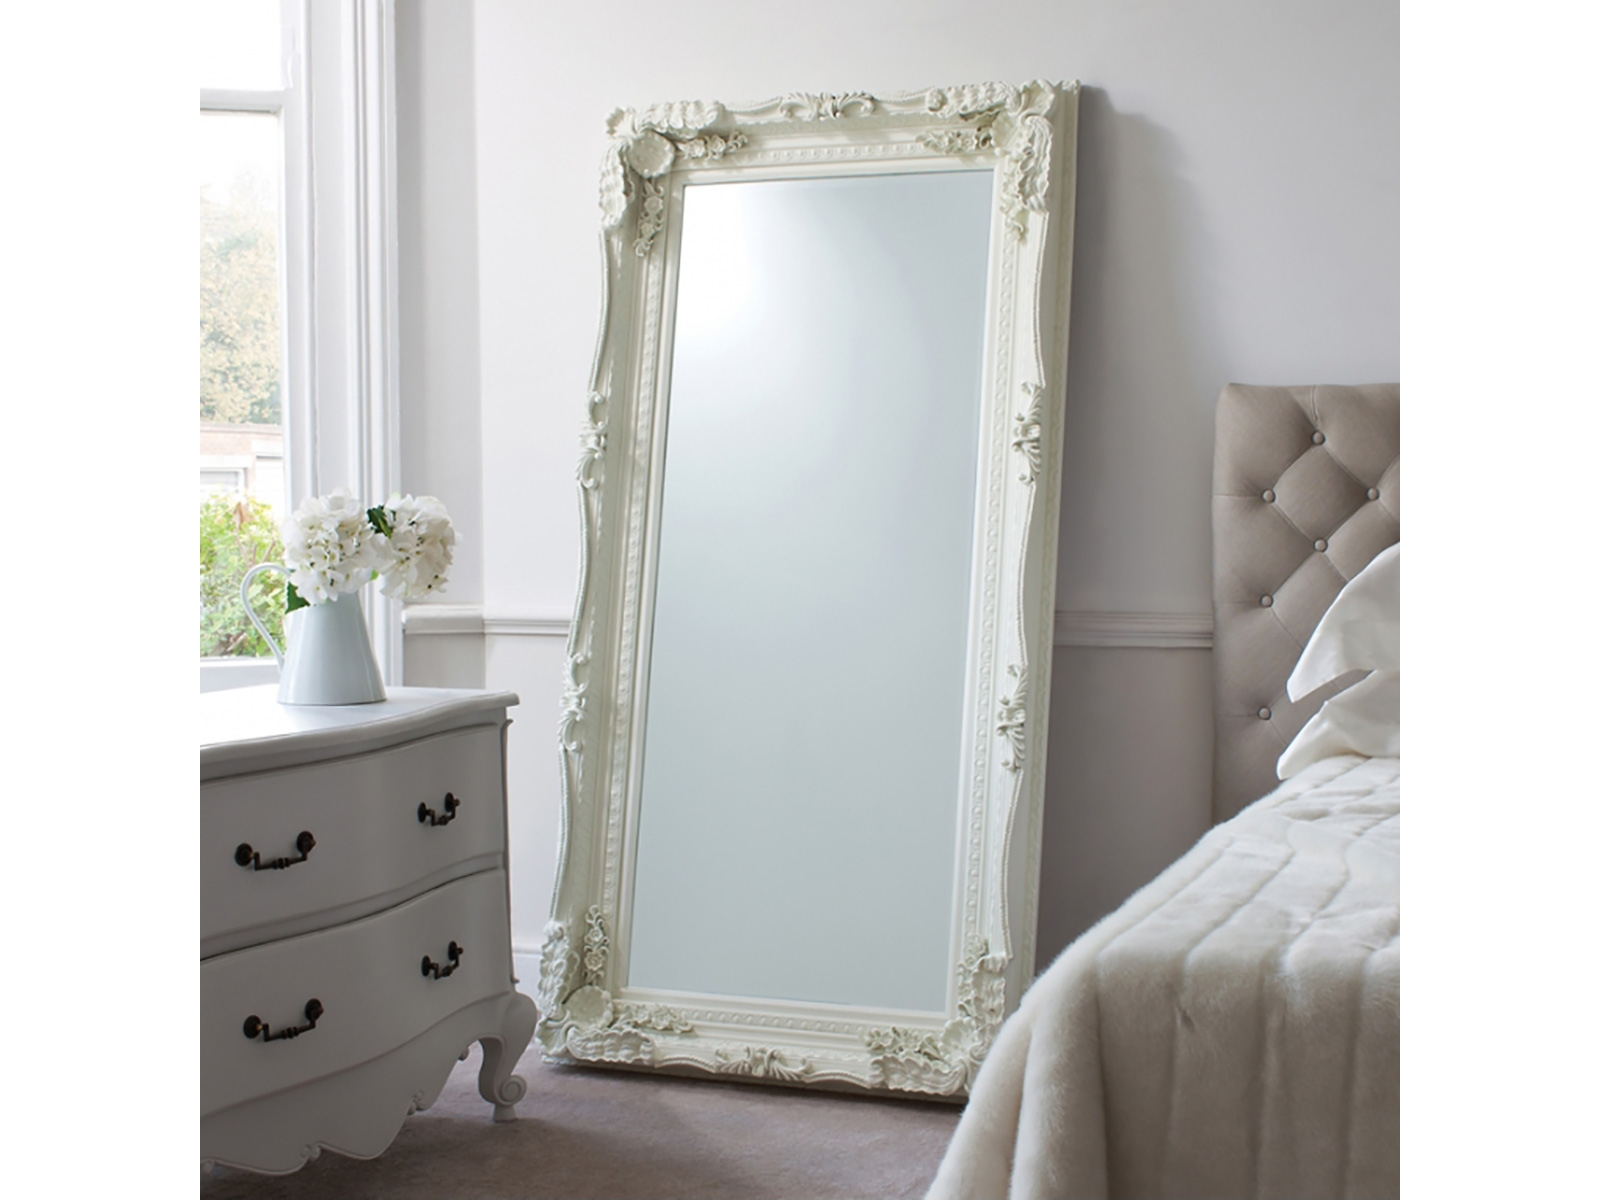 Mirrors Carved Louis Leaner Mirror Cream 69×35 Mirrors Cousins Intended For Ornate Leaner Mirror (Image 8 of 15)